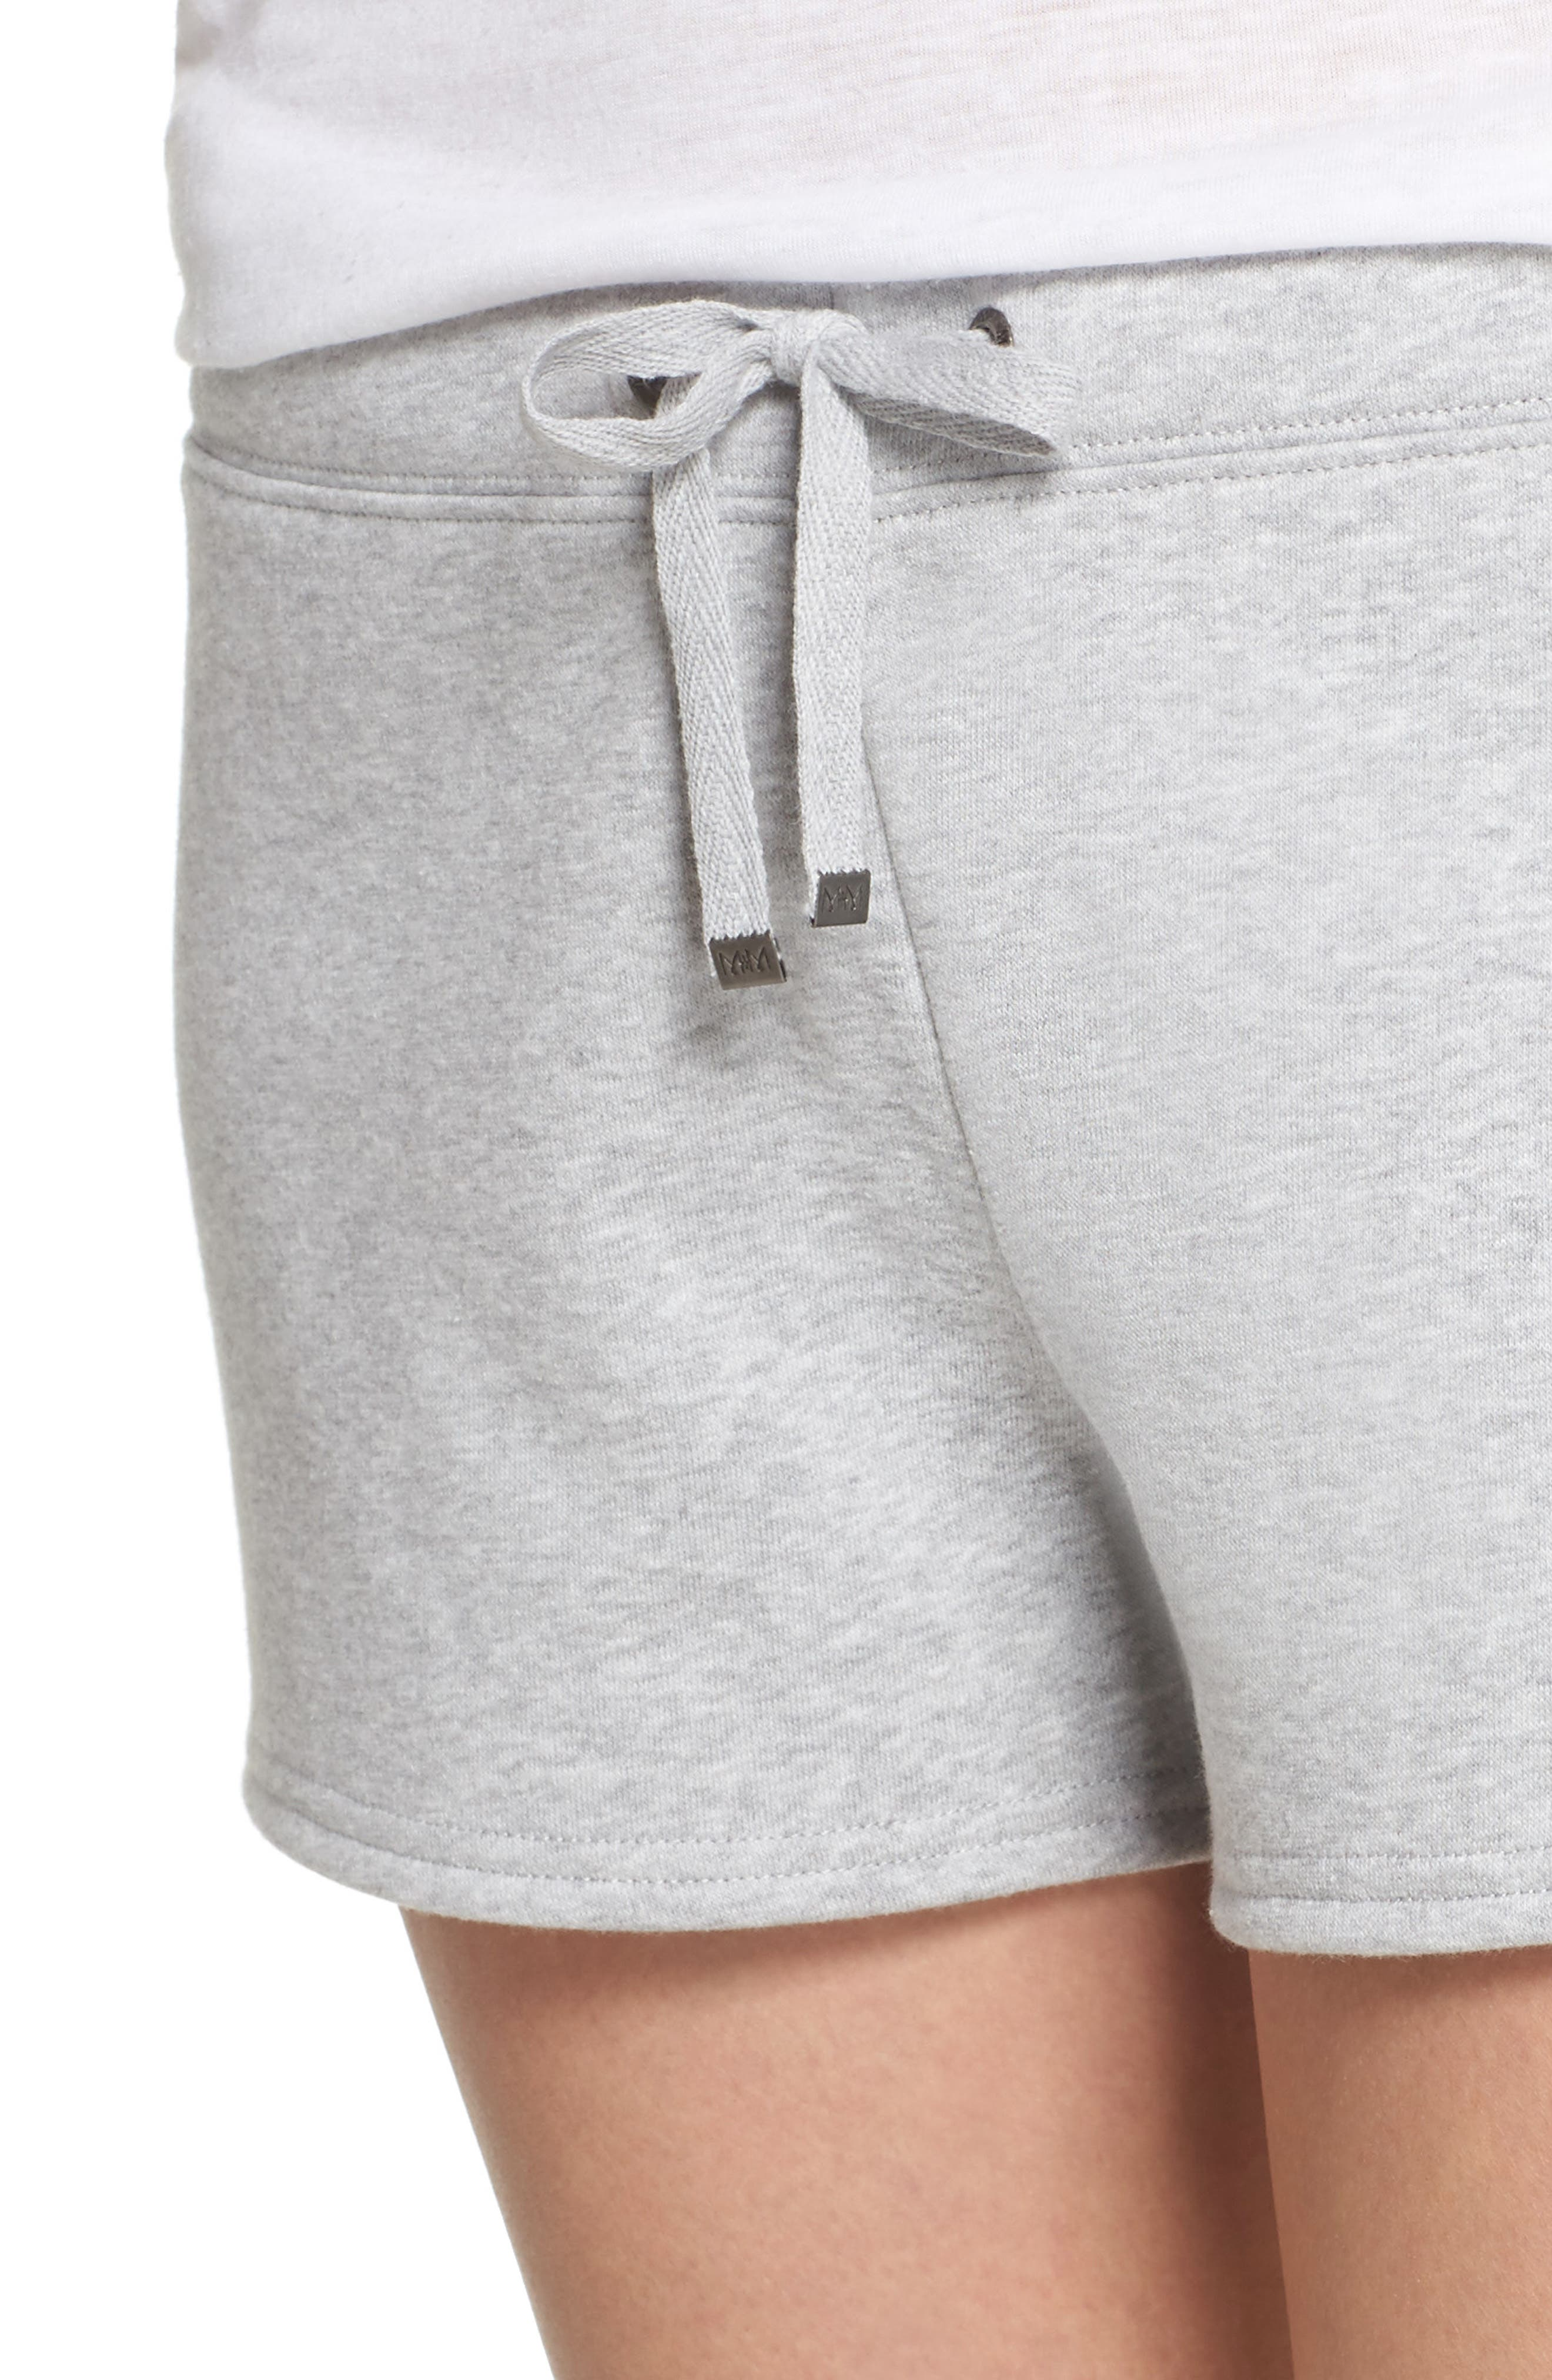 Take It Easy Lounge Shorts,                             Alternate thumbnail 4, color,                             021